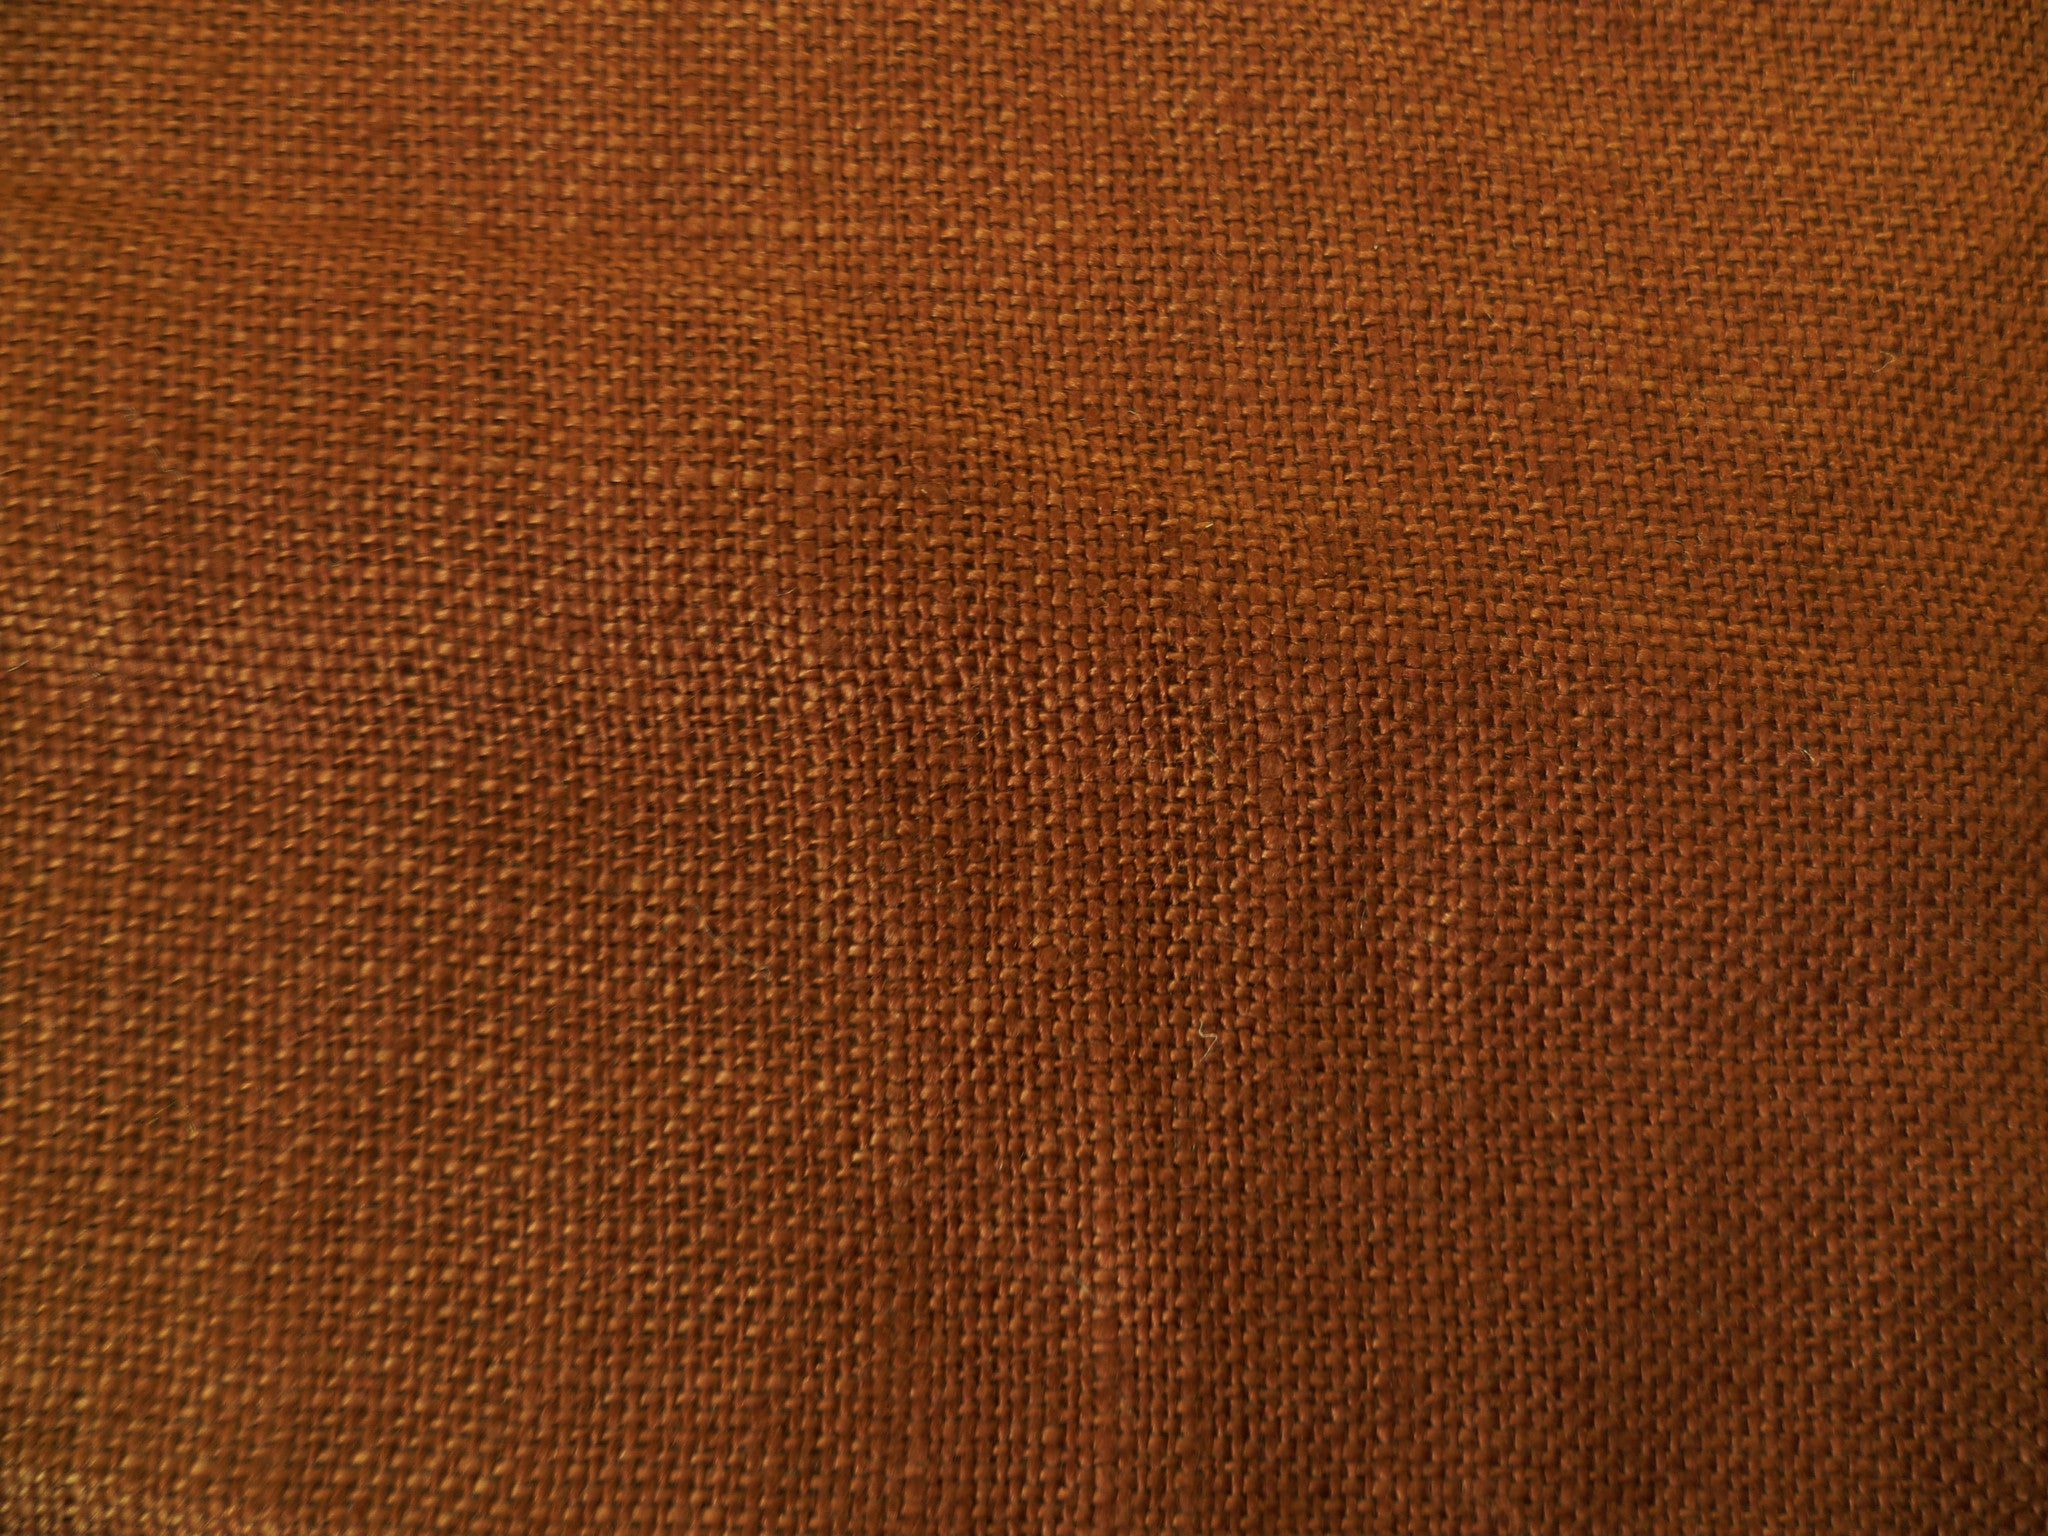 Terracotta ,Plain Weave Linen  With a 53 inch width